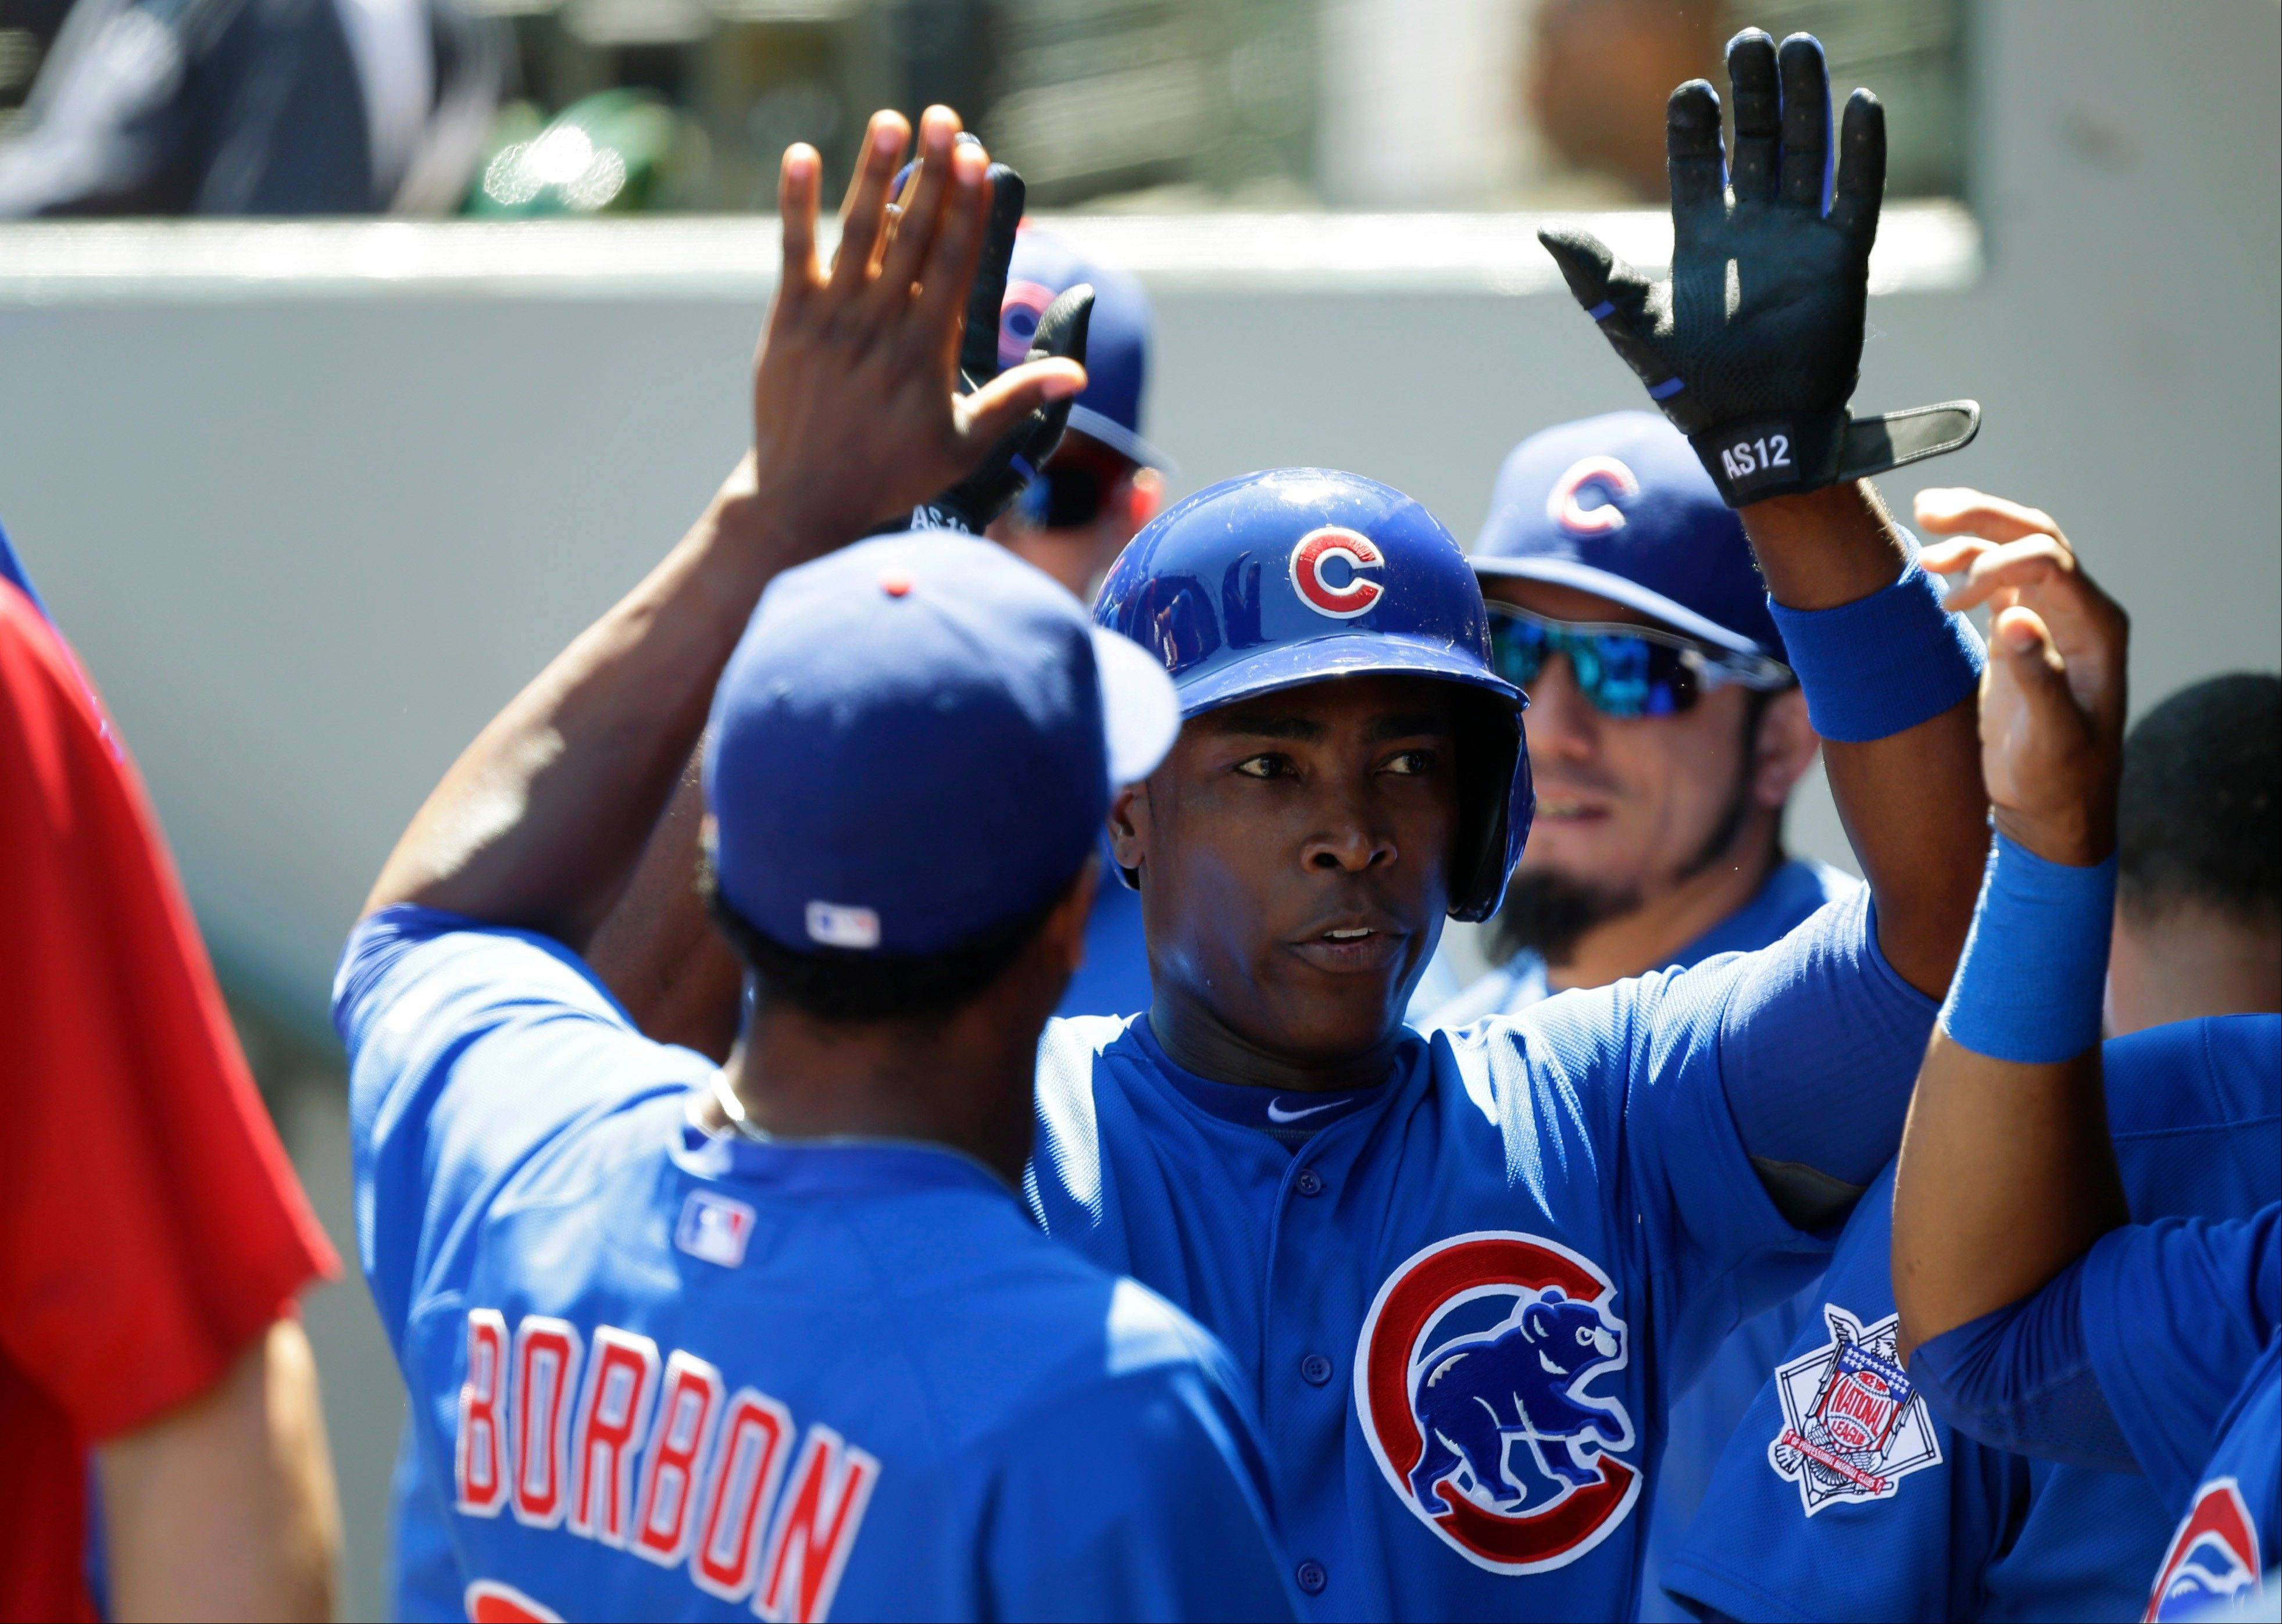 Chicago Cubs' Alfonso Soriano is greeted in the dugout after he scored against the Seattle Mariners in the second inning of a baseball game, Sunday, June 30, 2013, in Seattle.